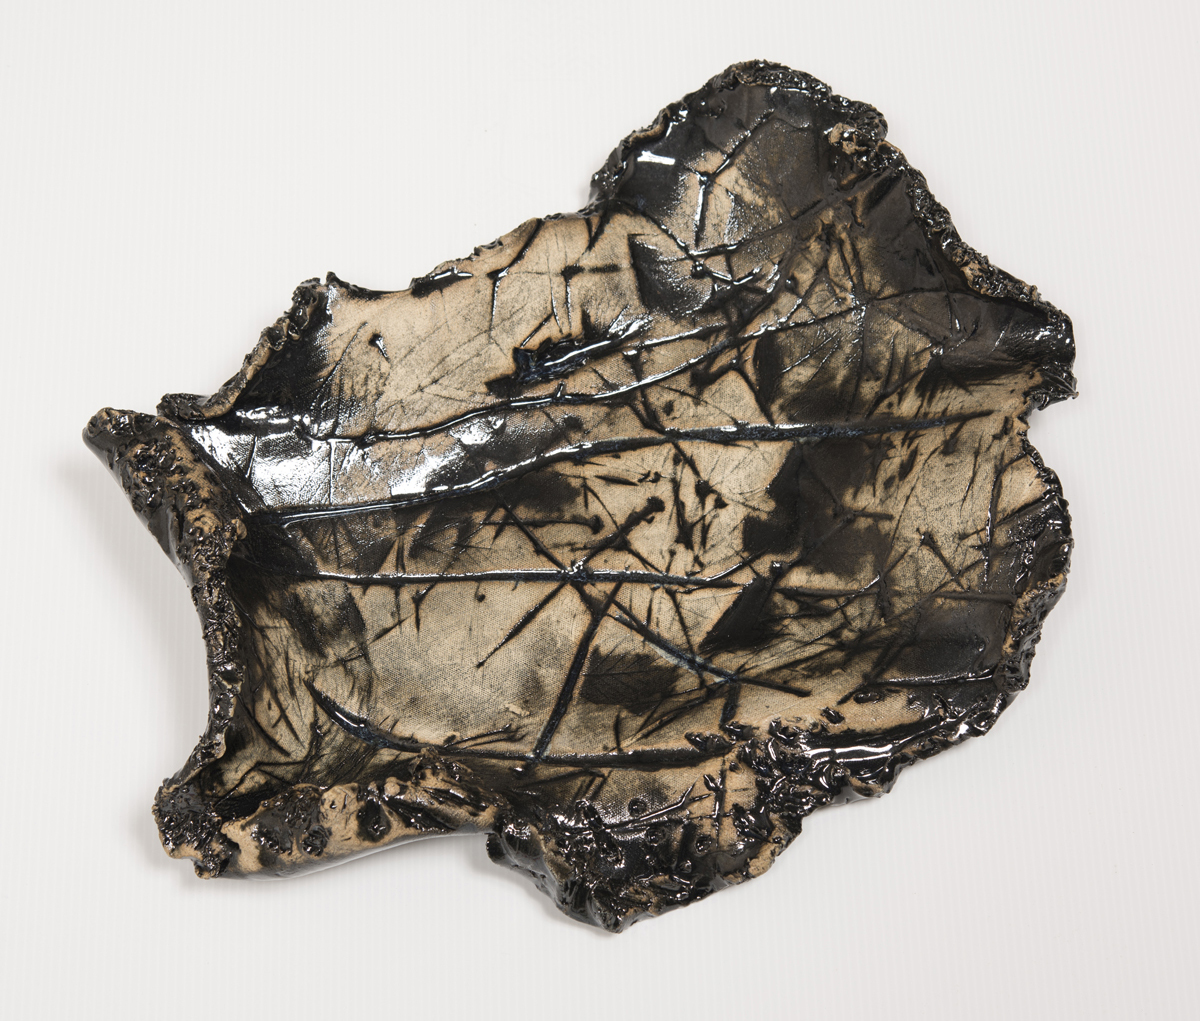 Alan Sonfist  Ceramic Relic of Hemlock Forest #3, 1971  High Fired Stoneware 17 x 15 inches